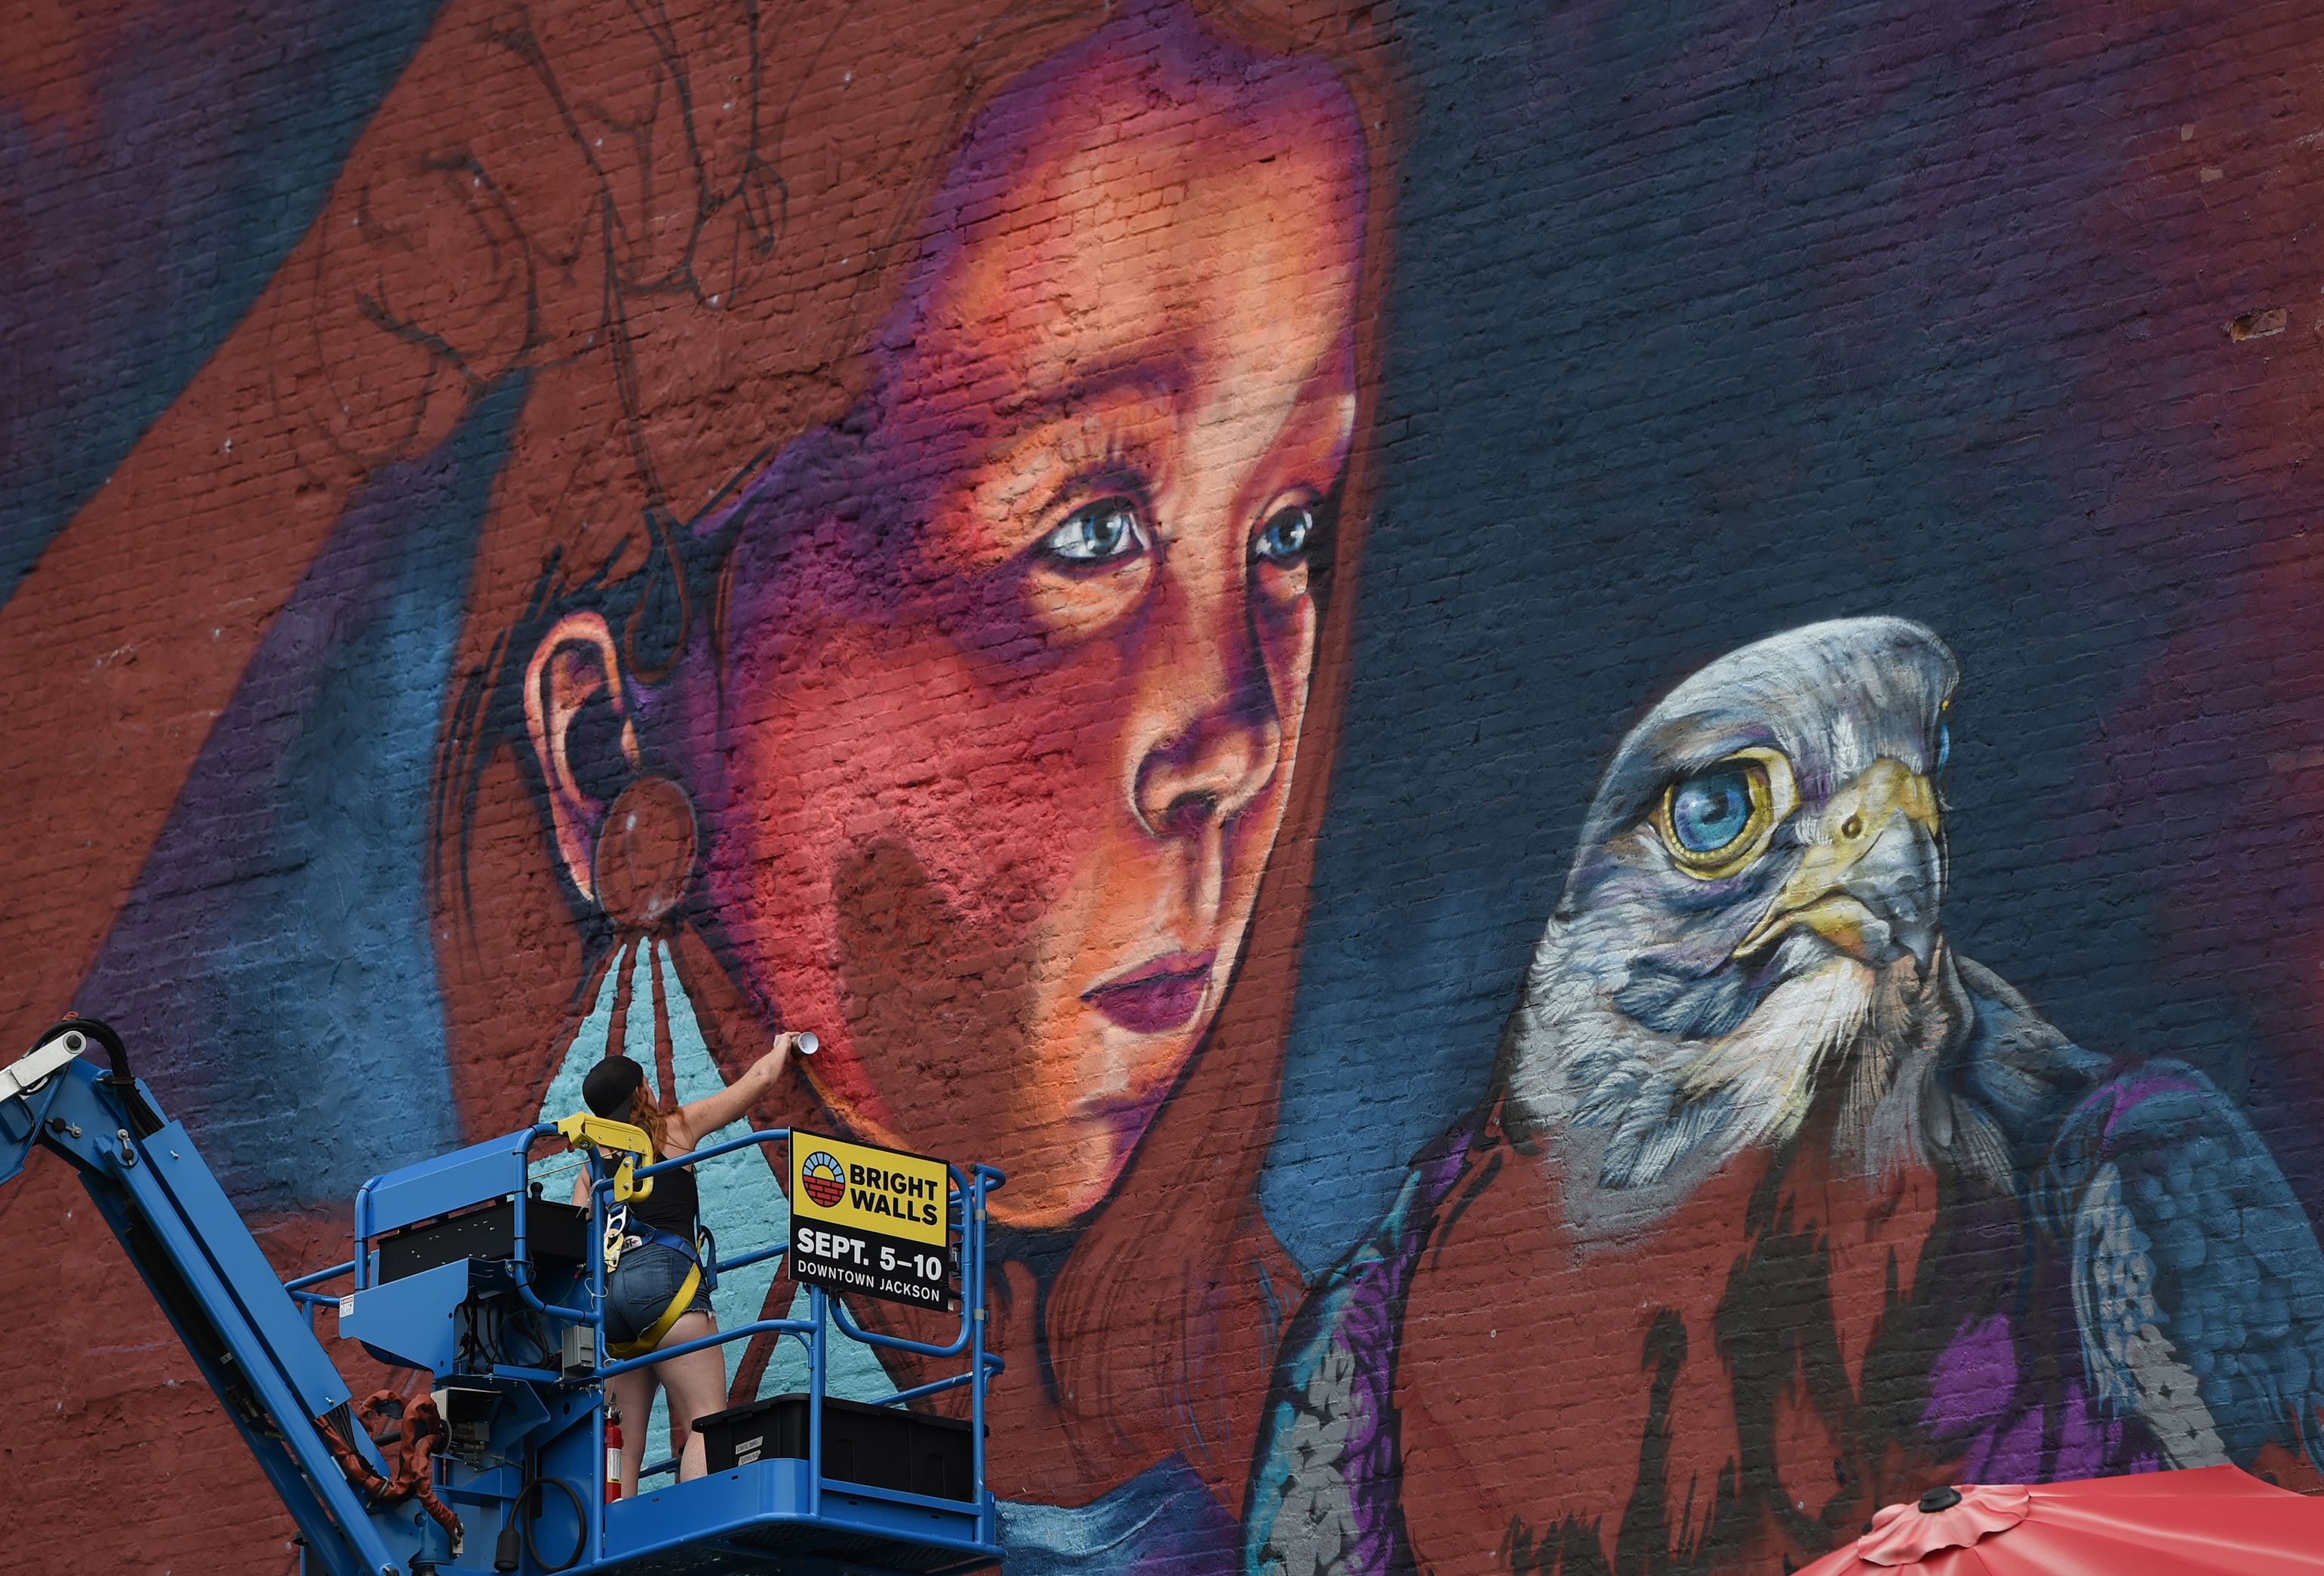 Downtown Jackson mural underway, previewing 2019 Bright Walls festival